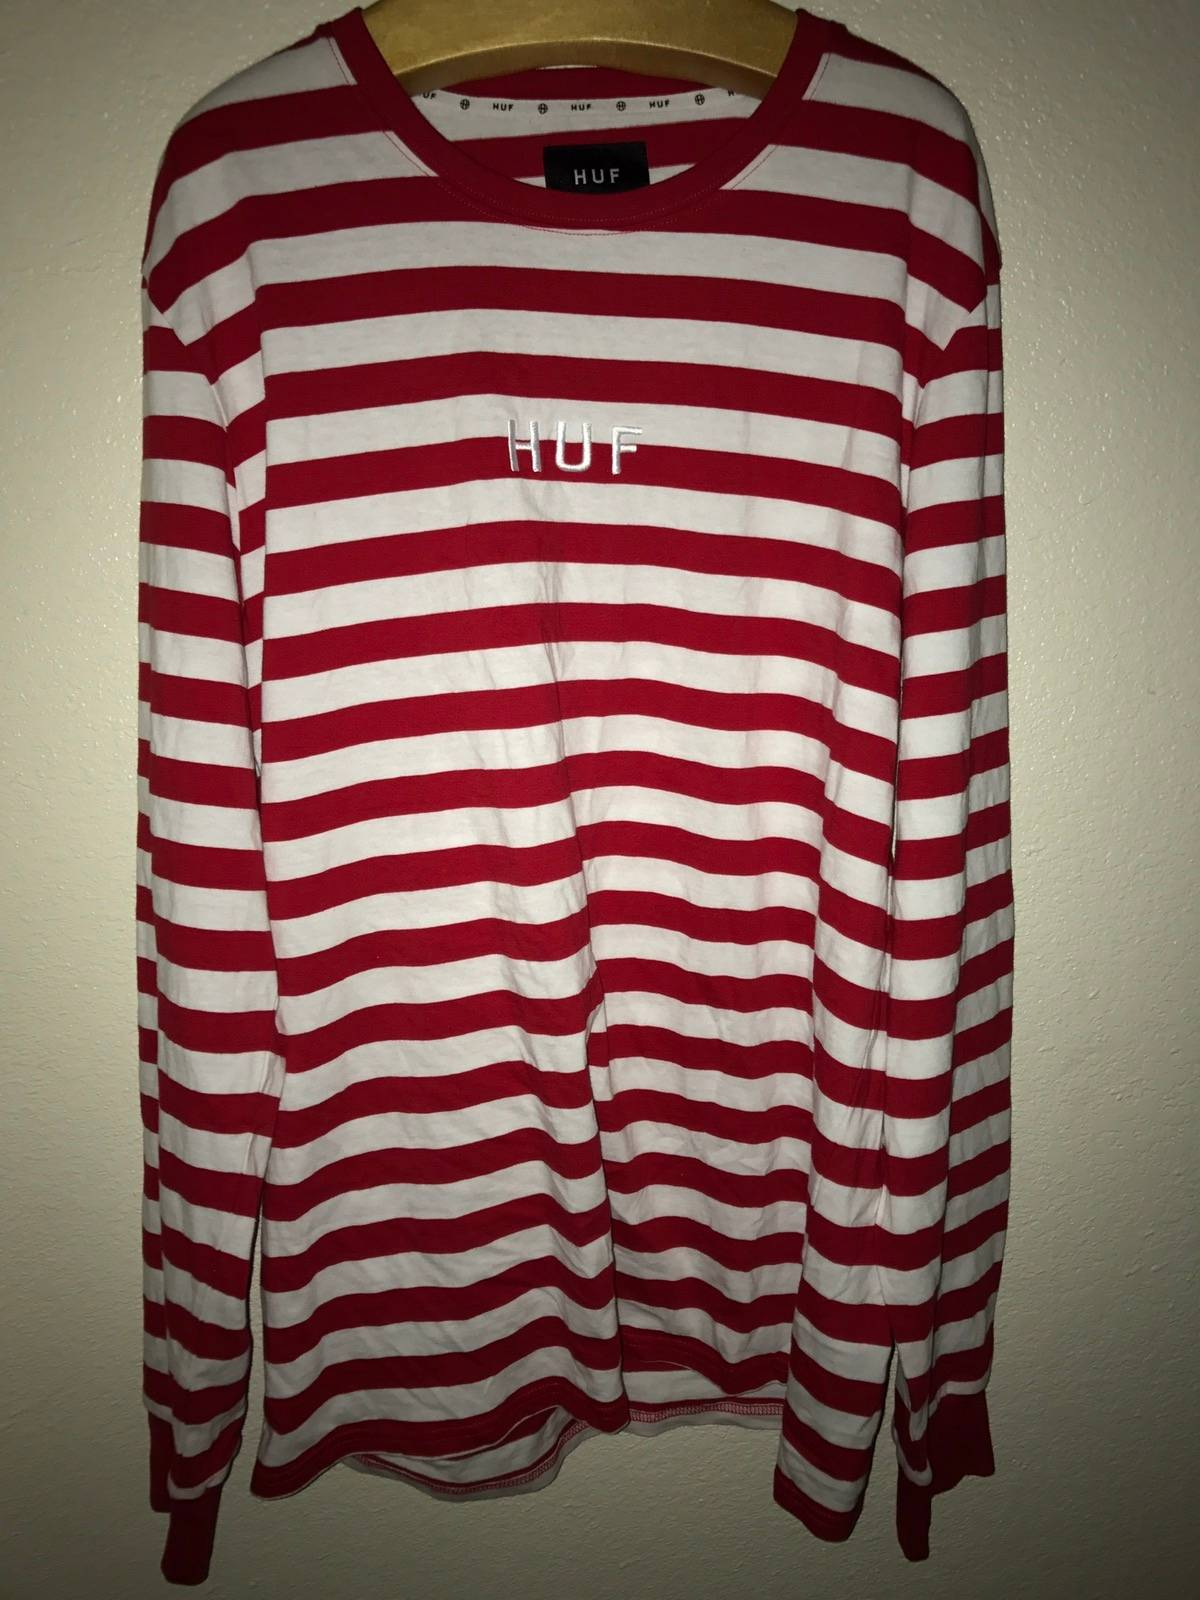 4fe7610c83 Huf HUF Long Sleeve Striped Size l - Long Sleeve T-Shirts for Sale - Grailed